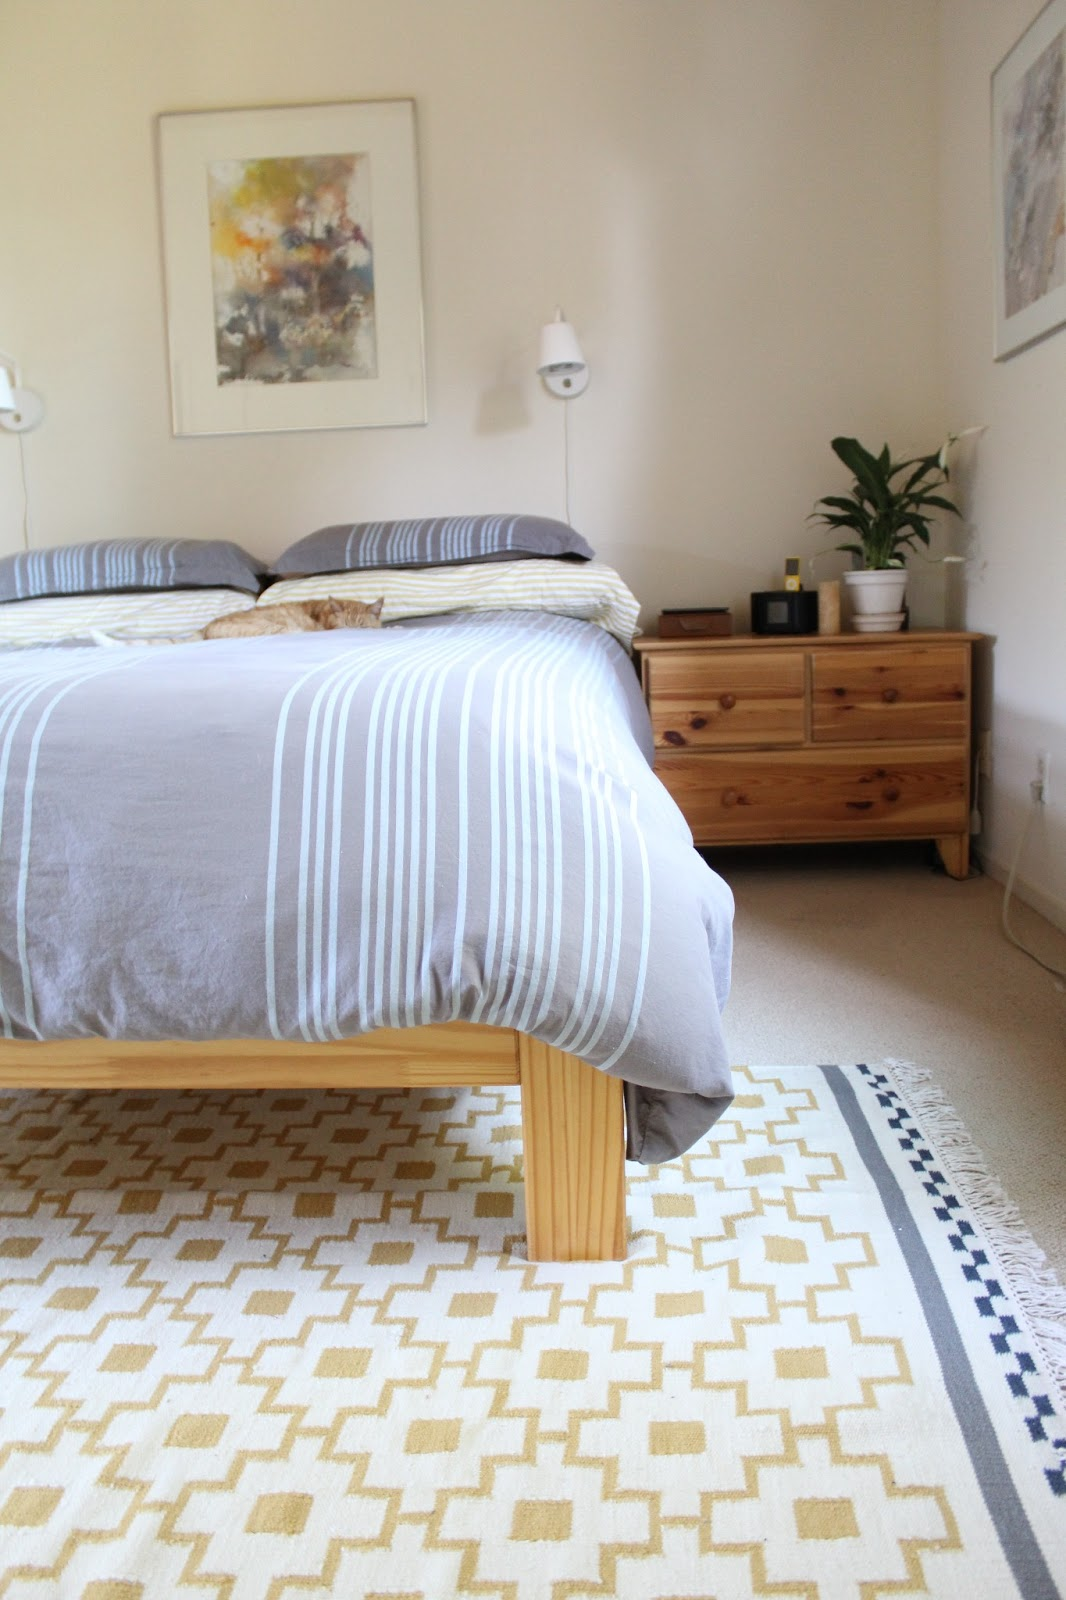 Turned To Design Dad Decor Quick Bedroom Makeover